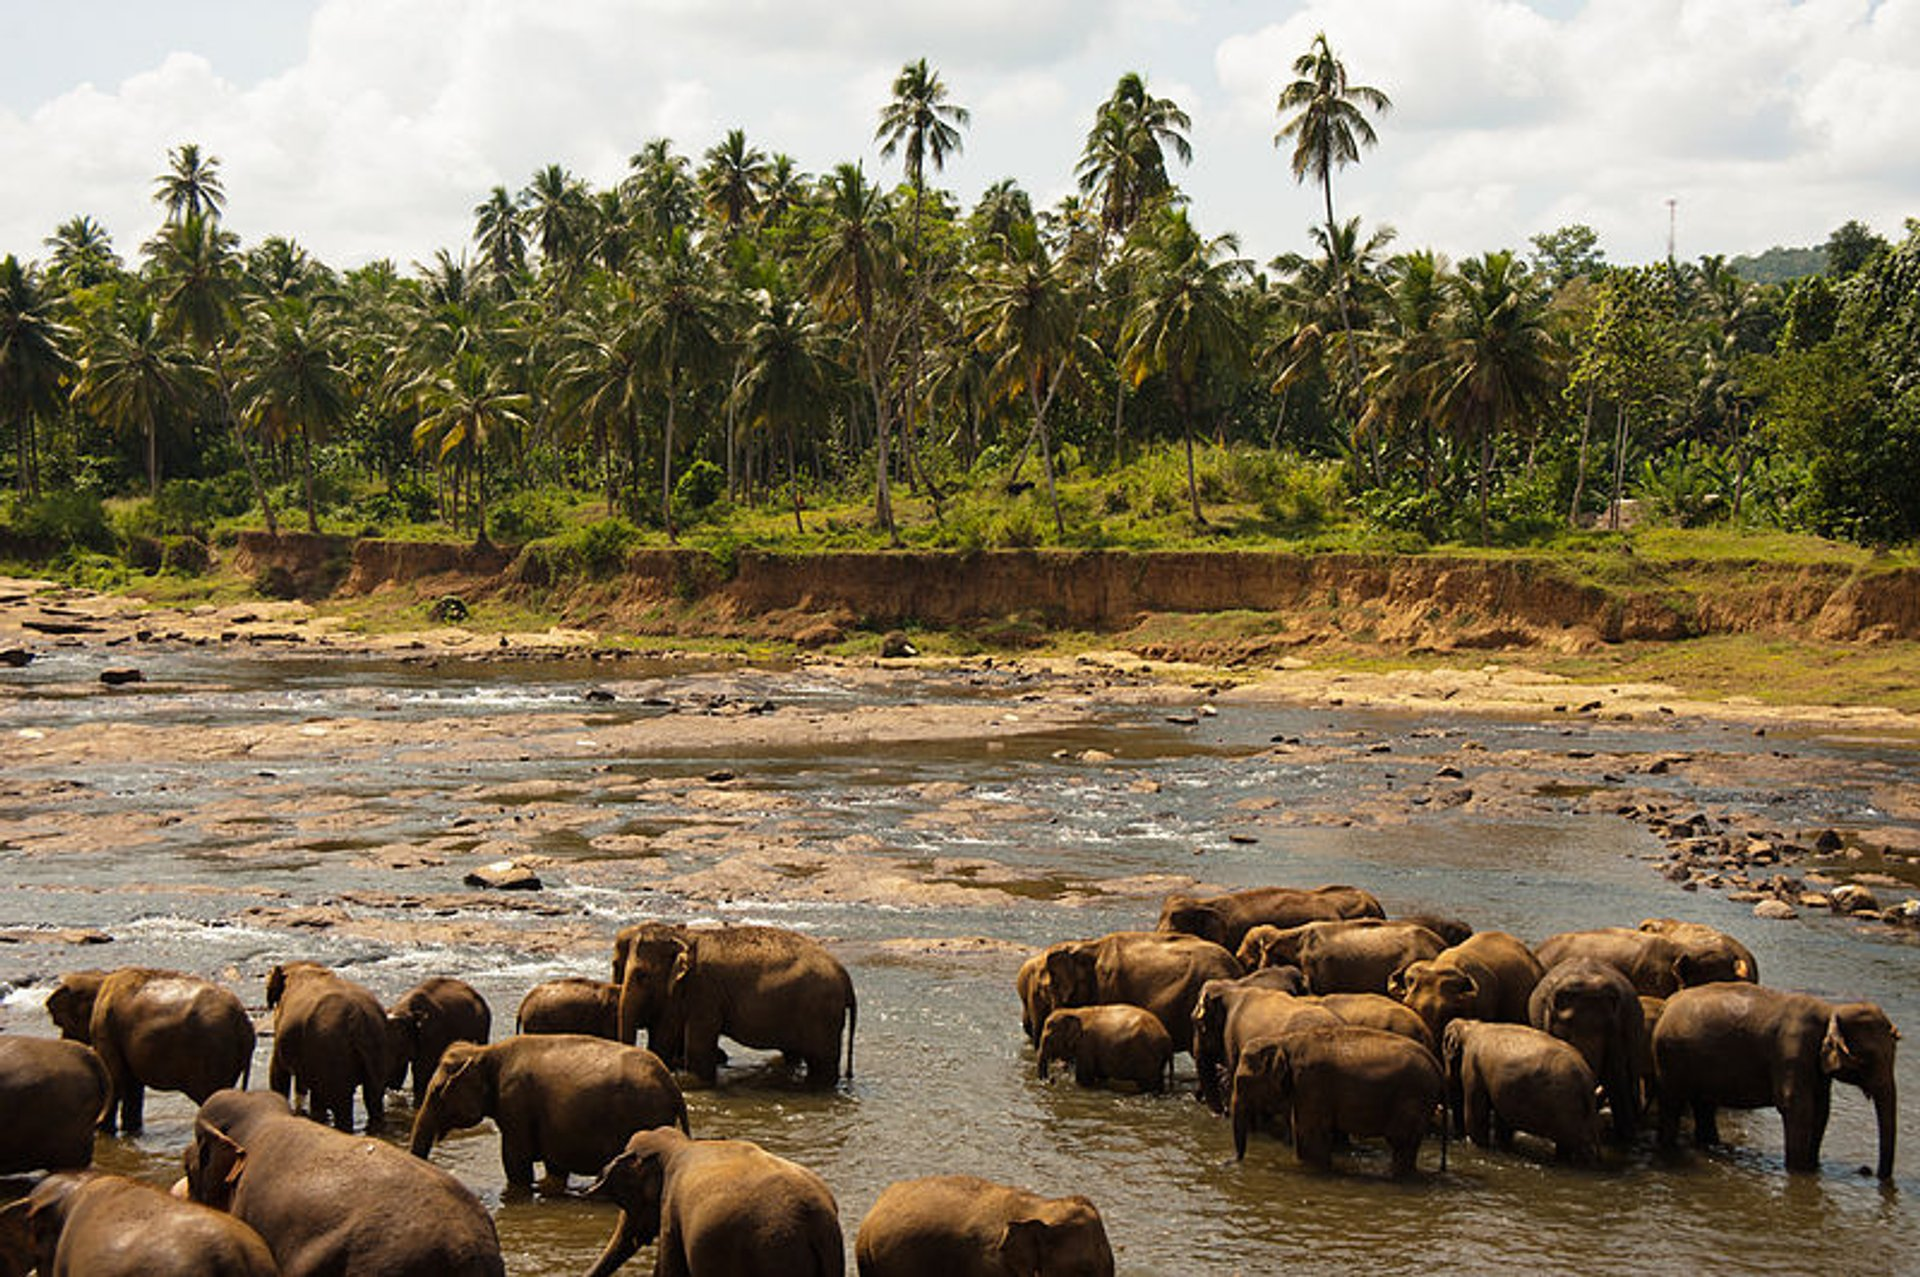 Elephant Safari in Udawalawe National Park in Sri Lanka - Best Season 2020